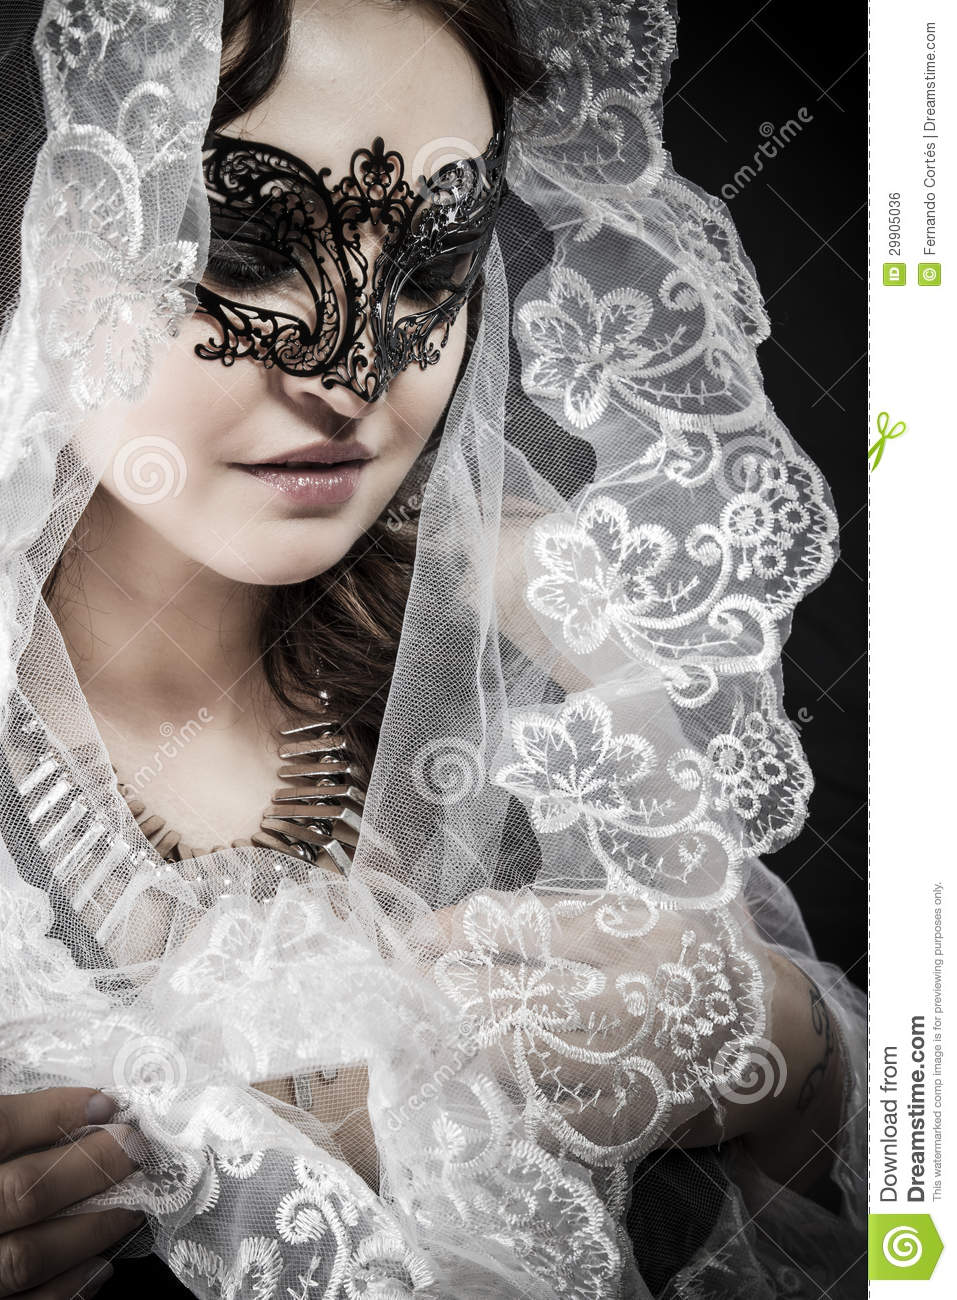 Virgin Woman In Veil And Black Dress With Venetian Mask